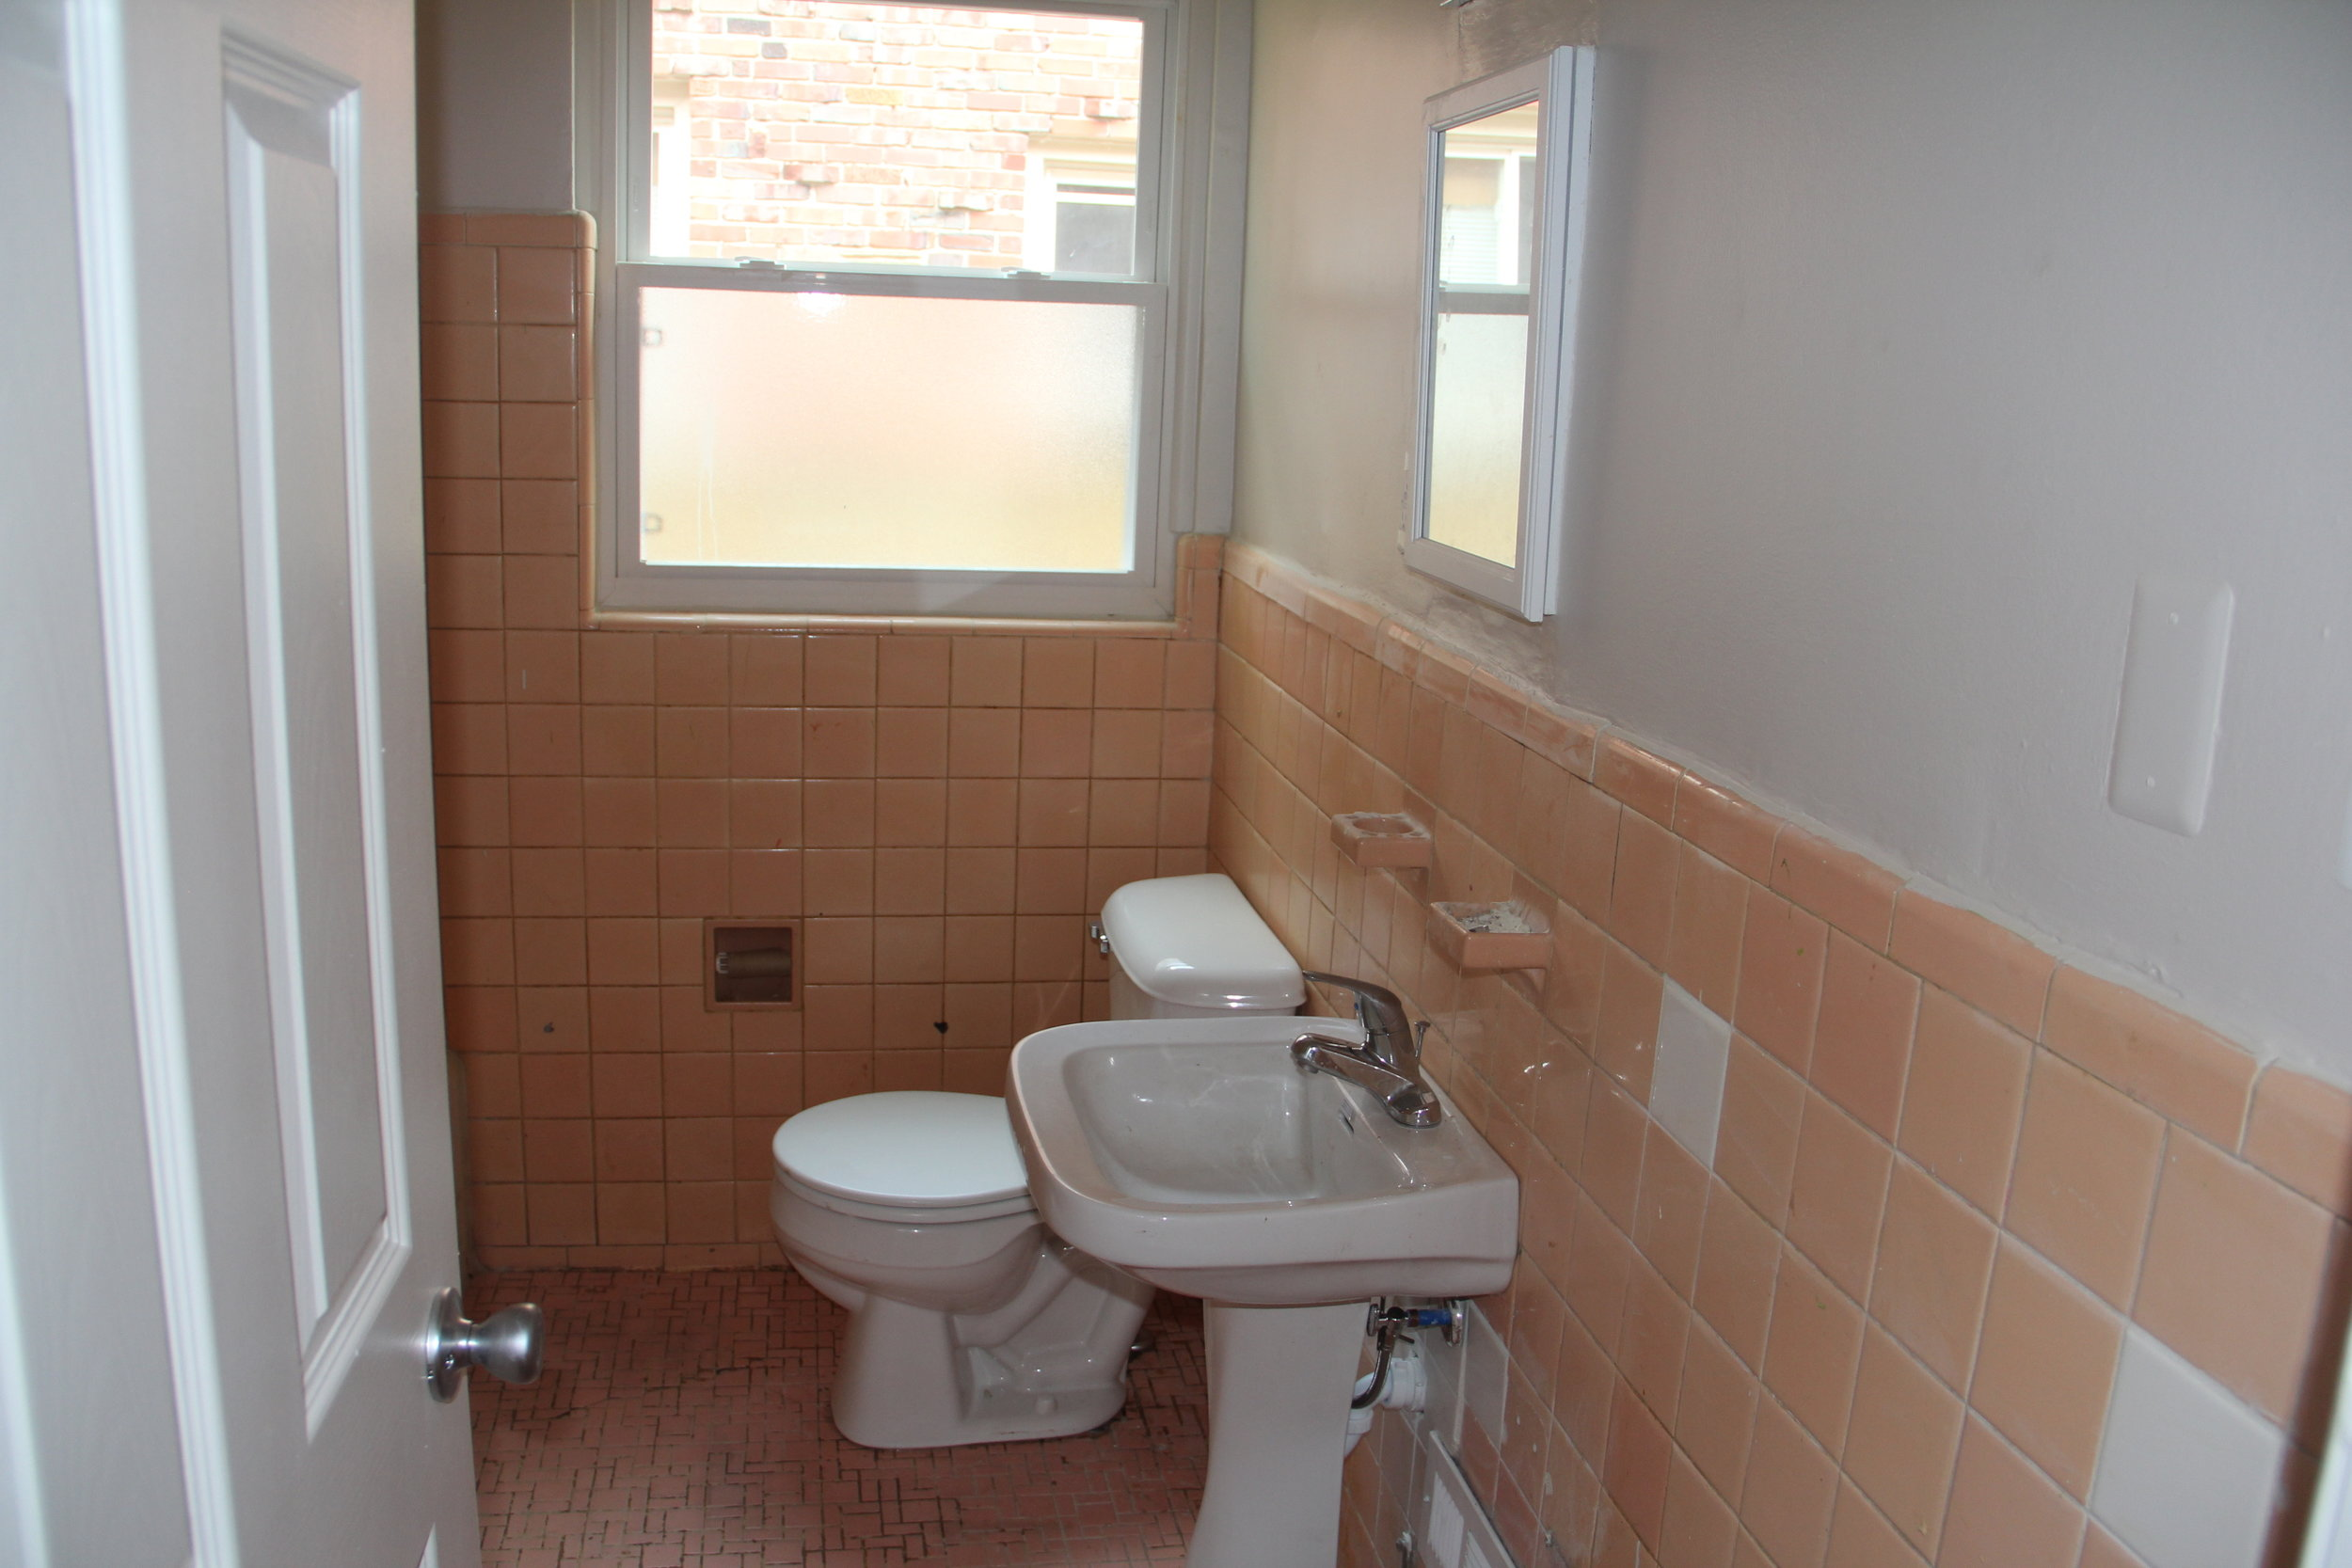 17521 Roselawn Bathroom 1.JPG